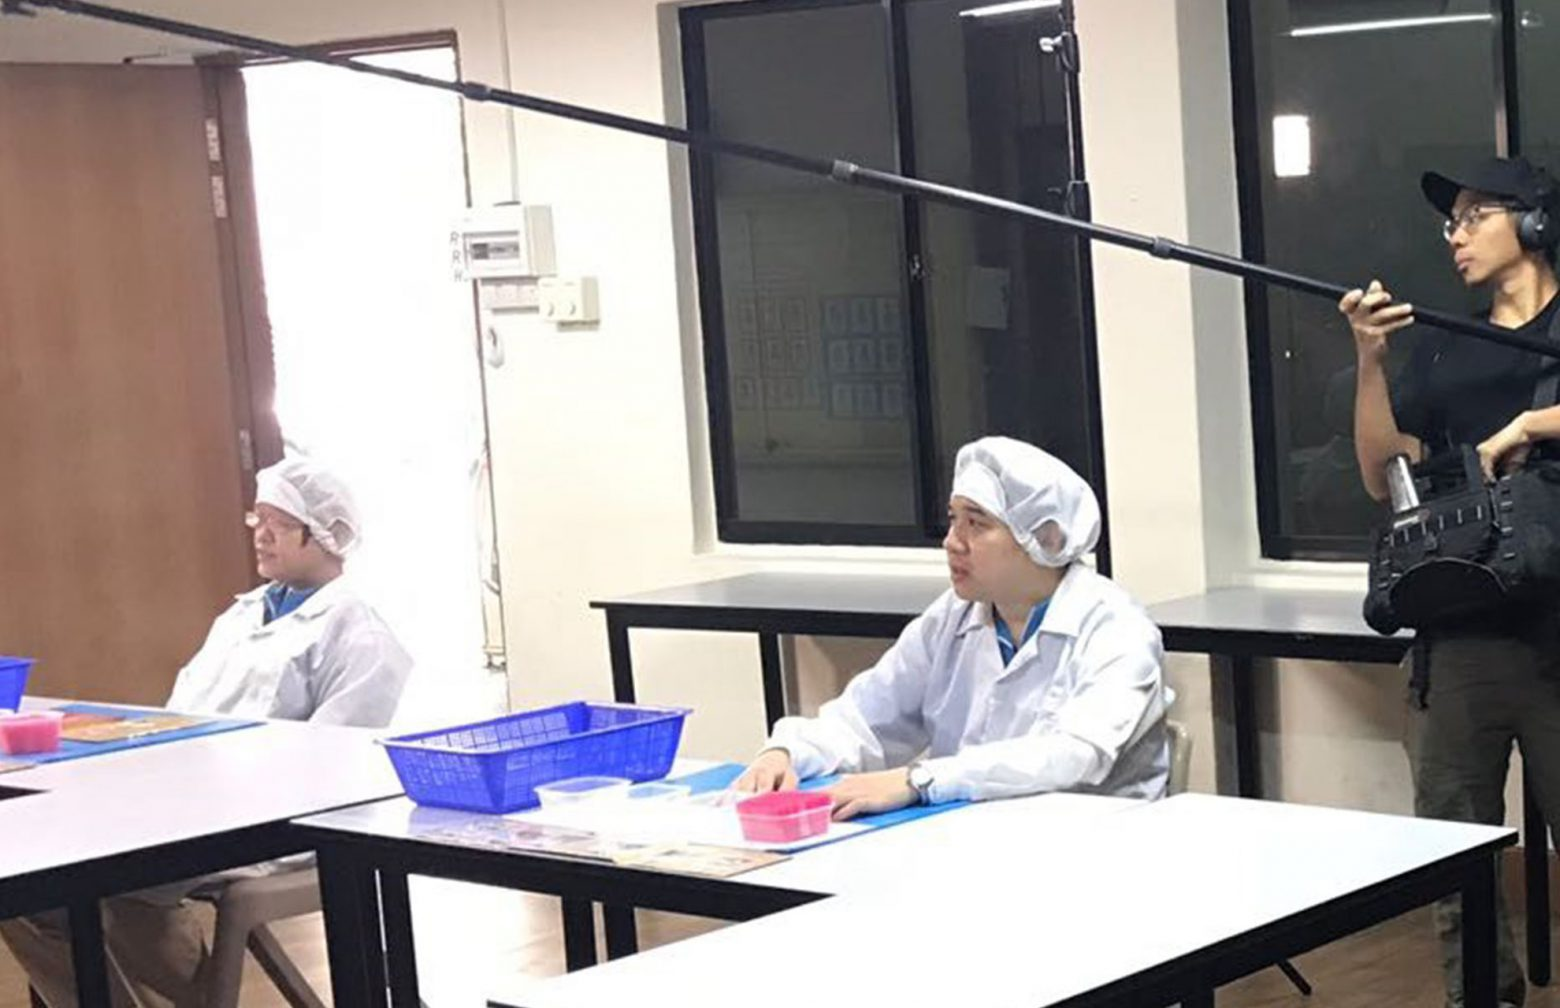 two Sivantos employees at Singapore with protective clothing getting interviewed